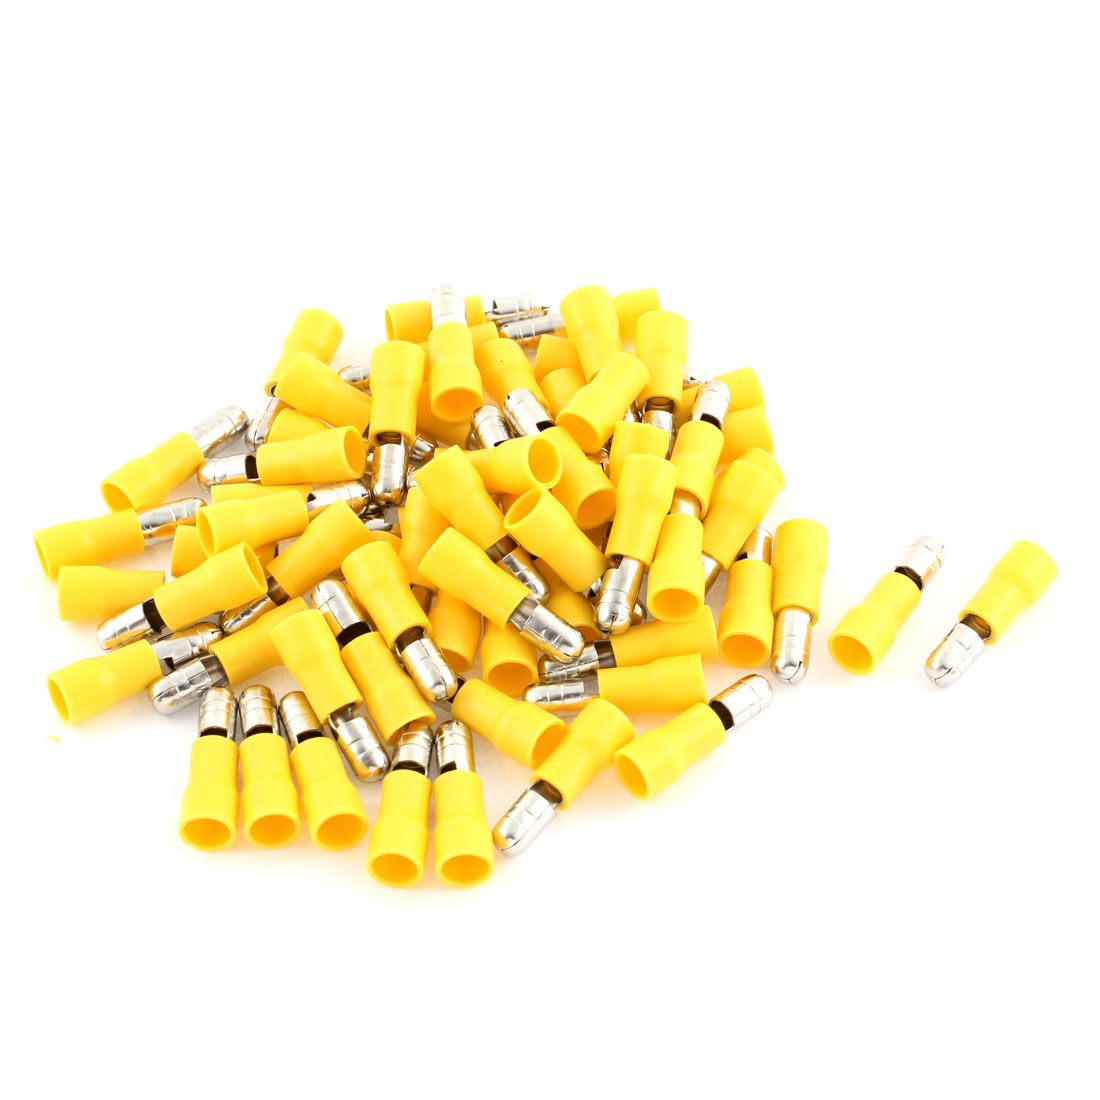 65Pcs 12-10 AWG Yellow Insulated Connector Male Crimp Terminals MPD5-195